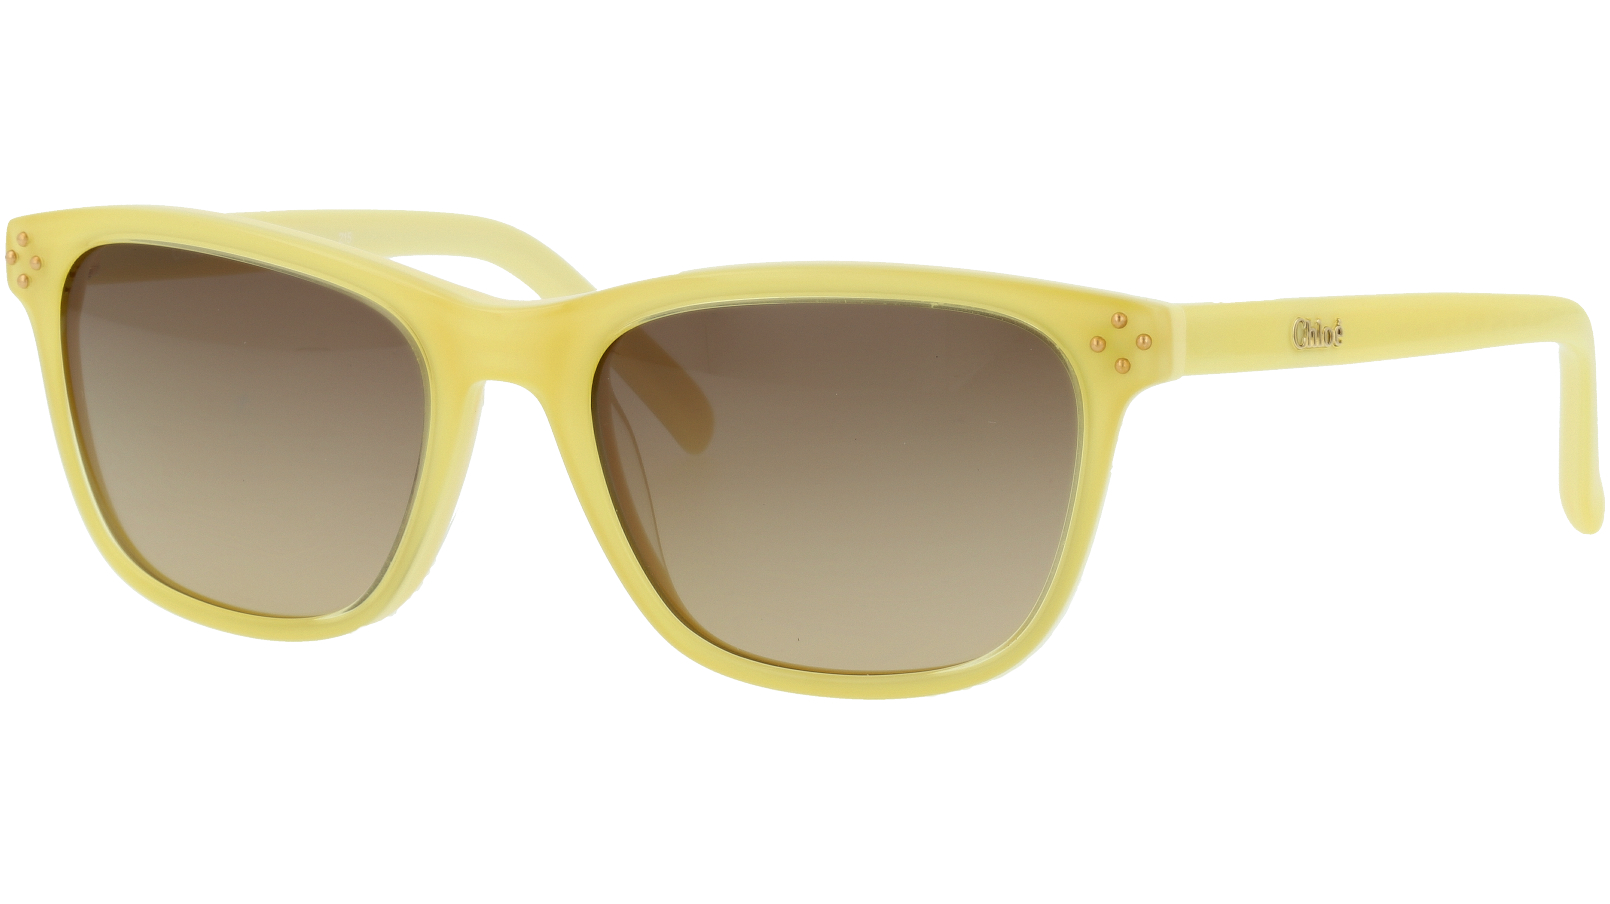 CHLOE CE3604S 799 49 Yellow Square Sunglasses